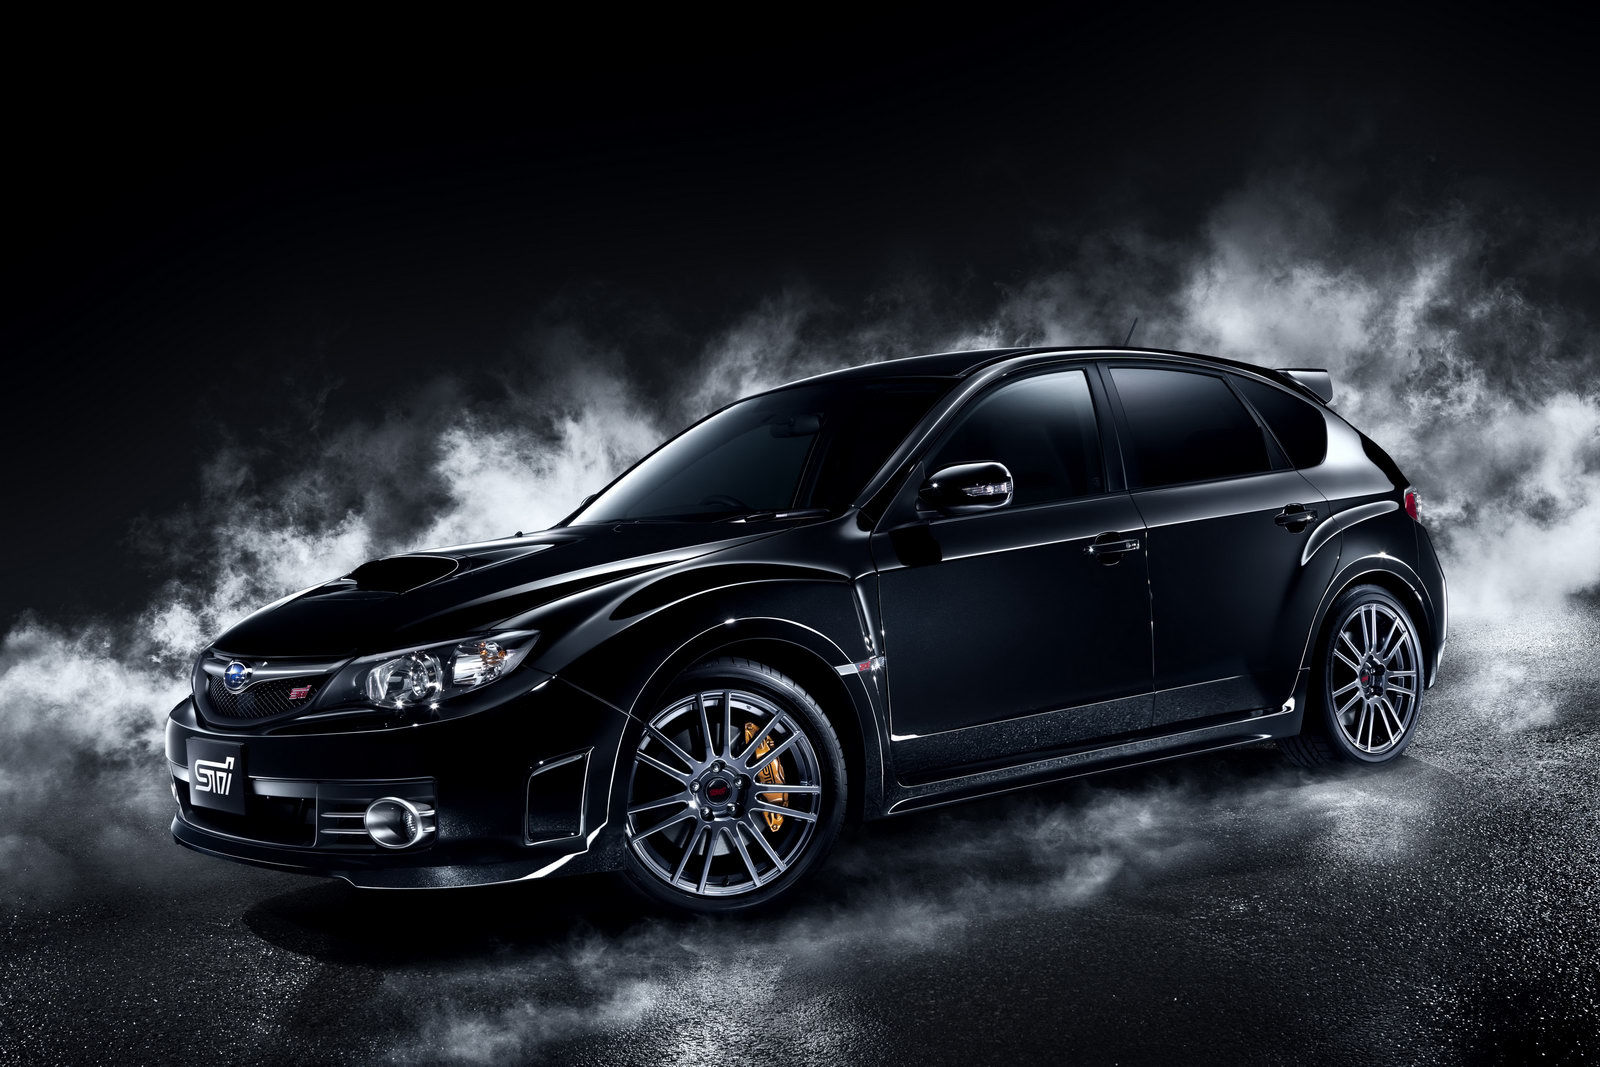 cars Subaru Subaru Impreza HD Wallpaper